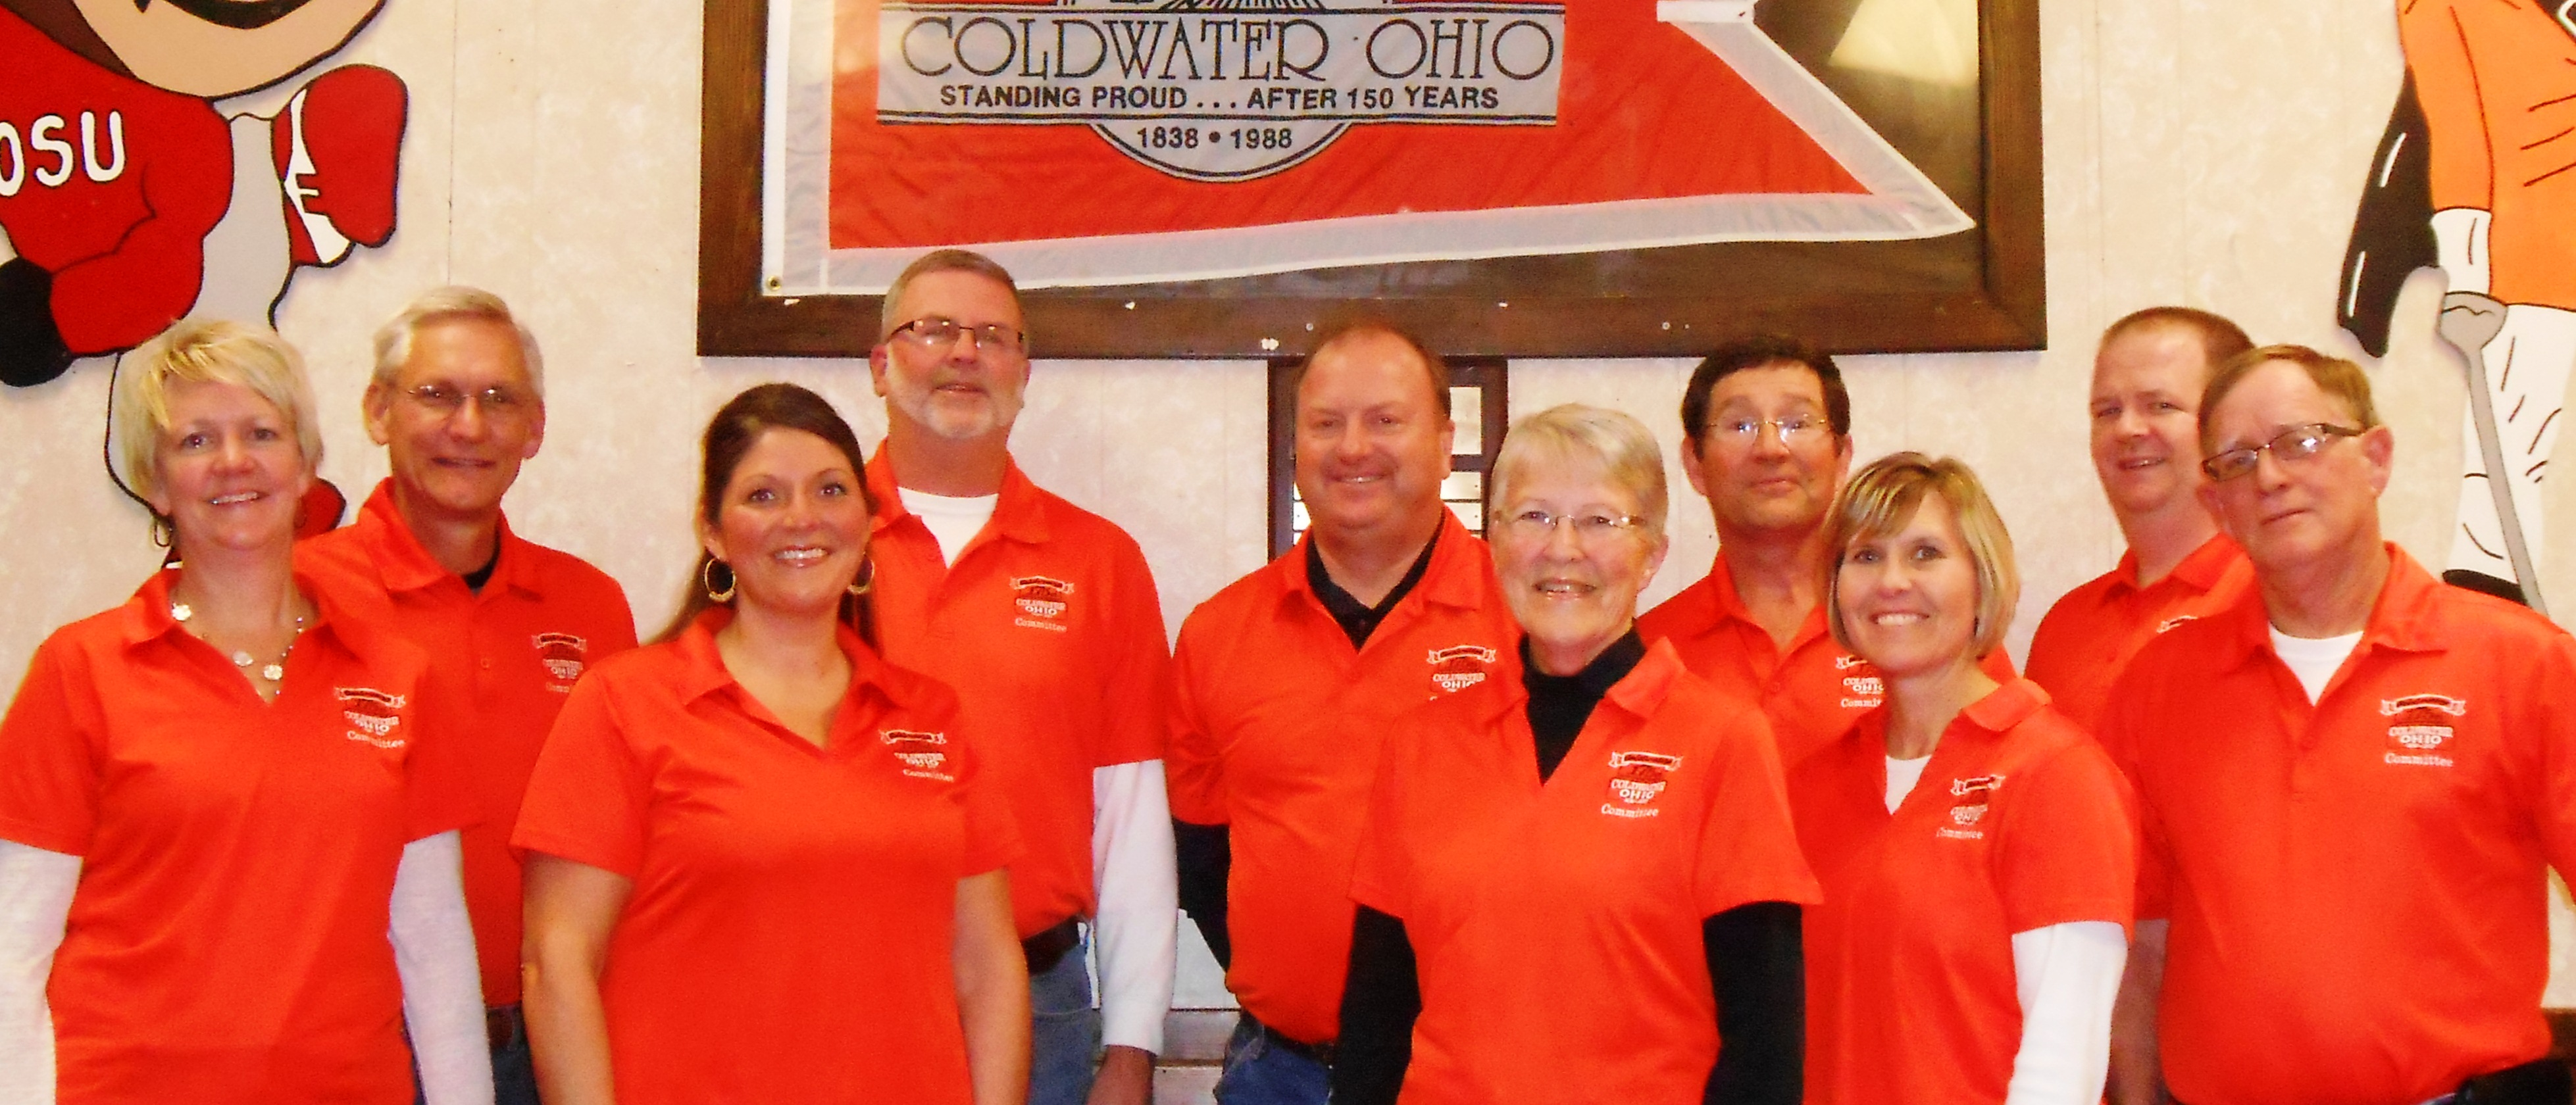 Coldwater's 175th Celebration mittee announces up ing